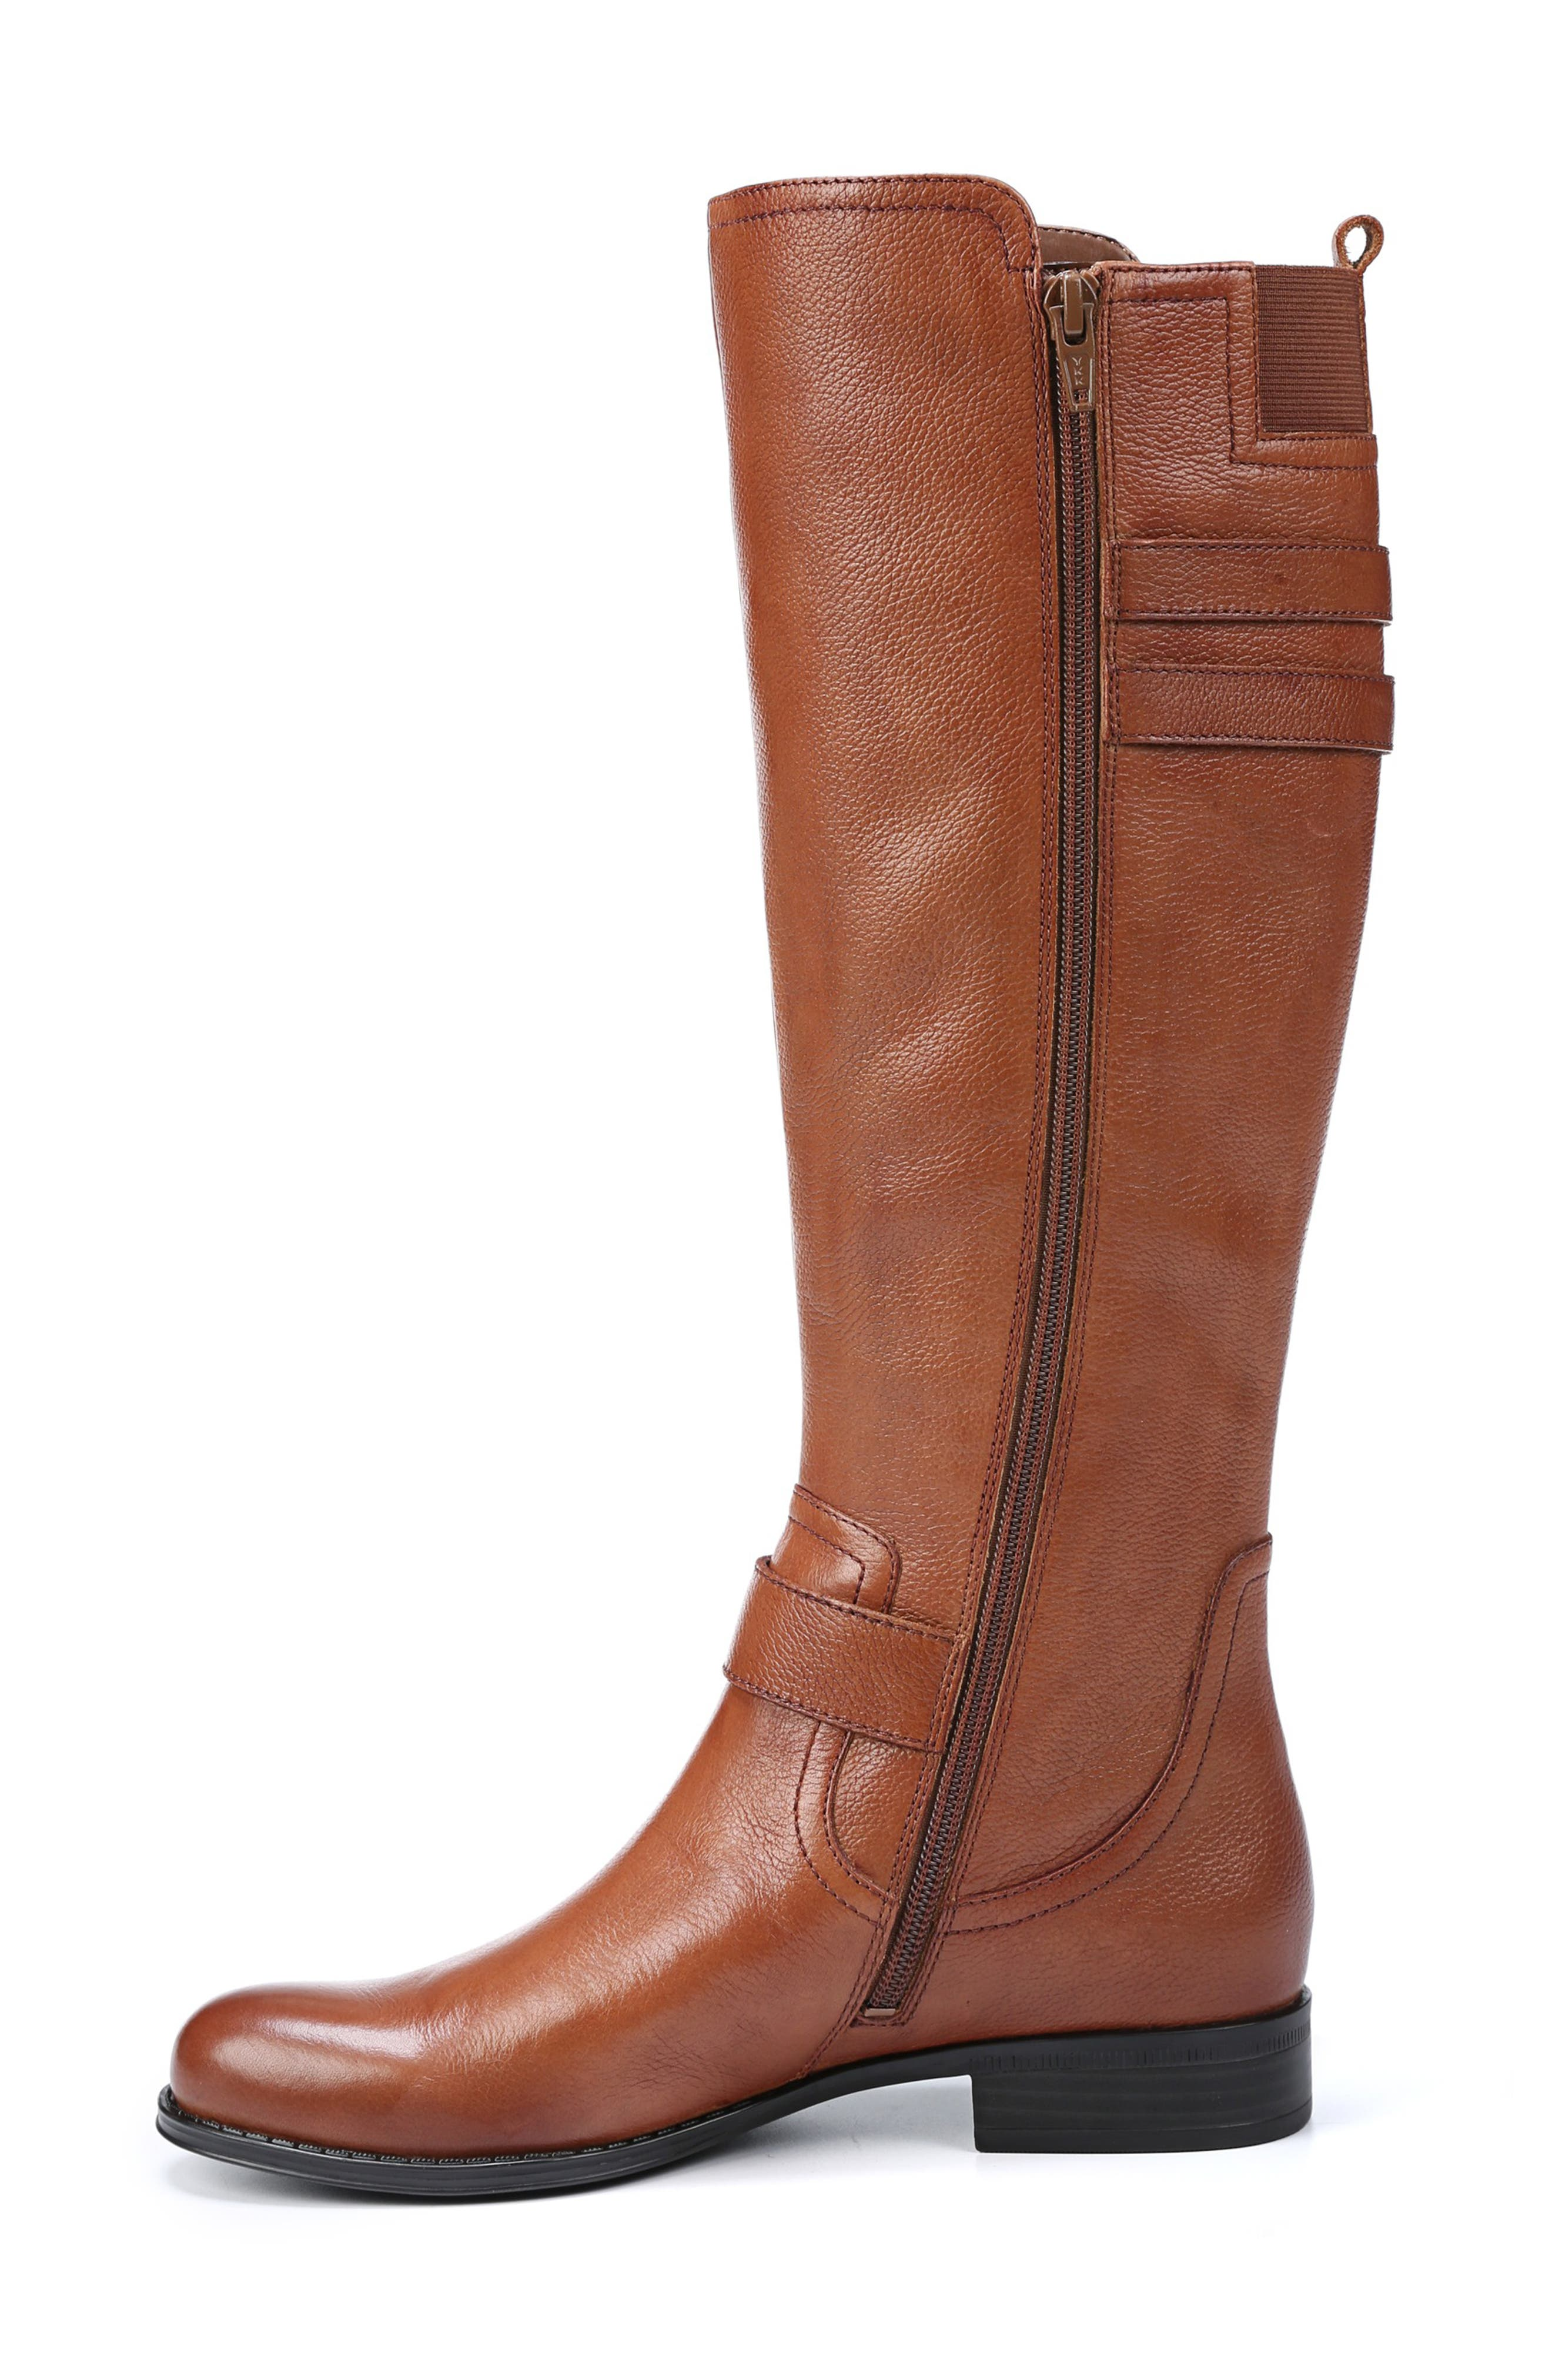 NATURALIZER, Jessie Knee High Riding Boot, Alternate thumbnail 8, color, BANANA BREAD LEATHER